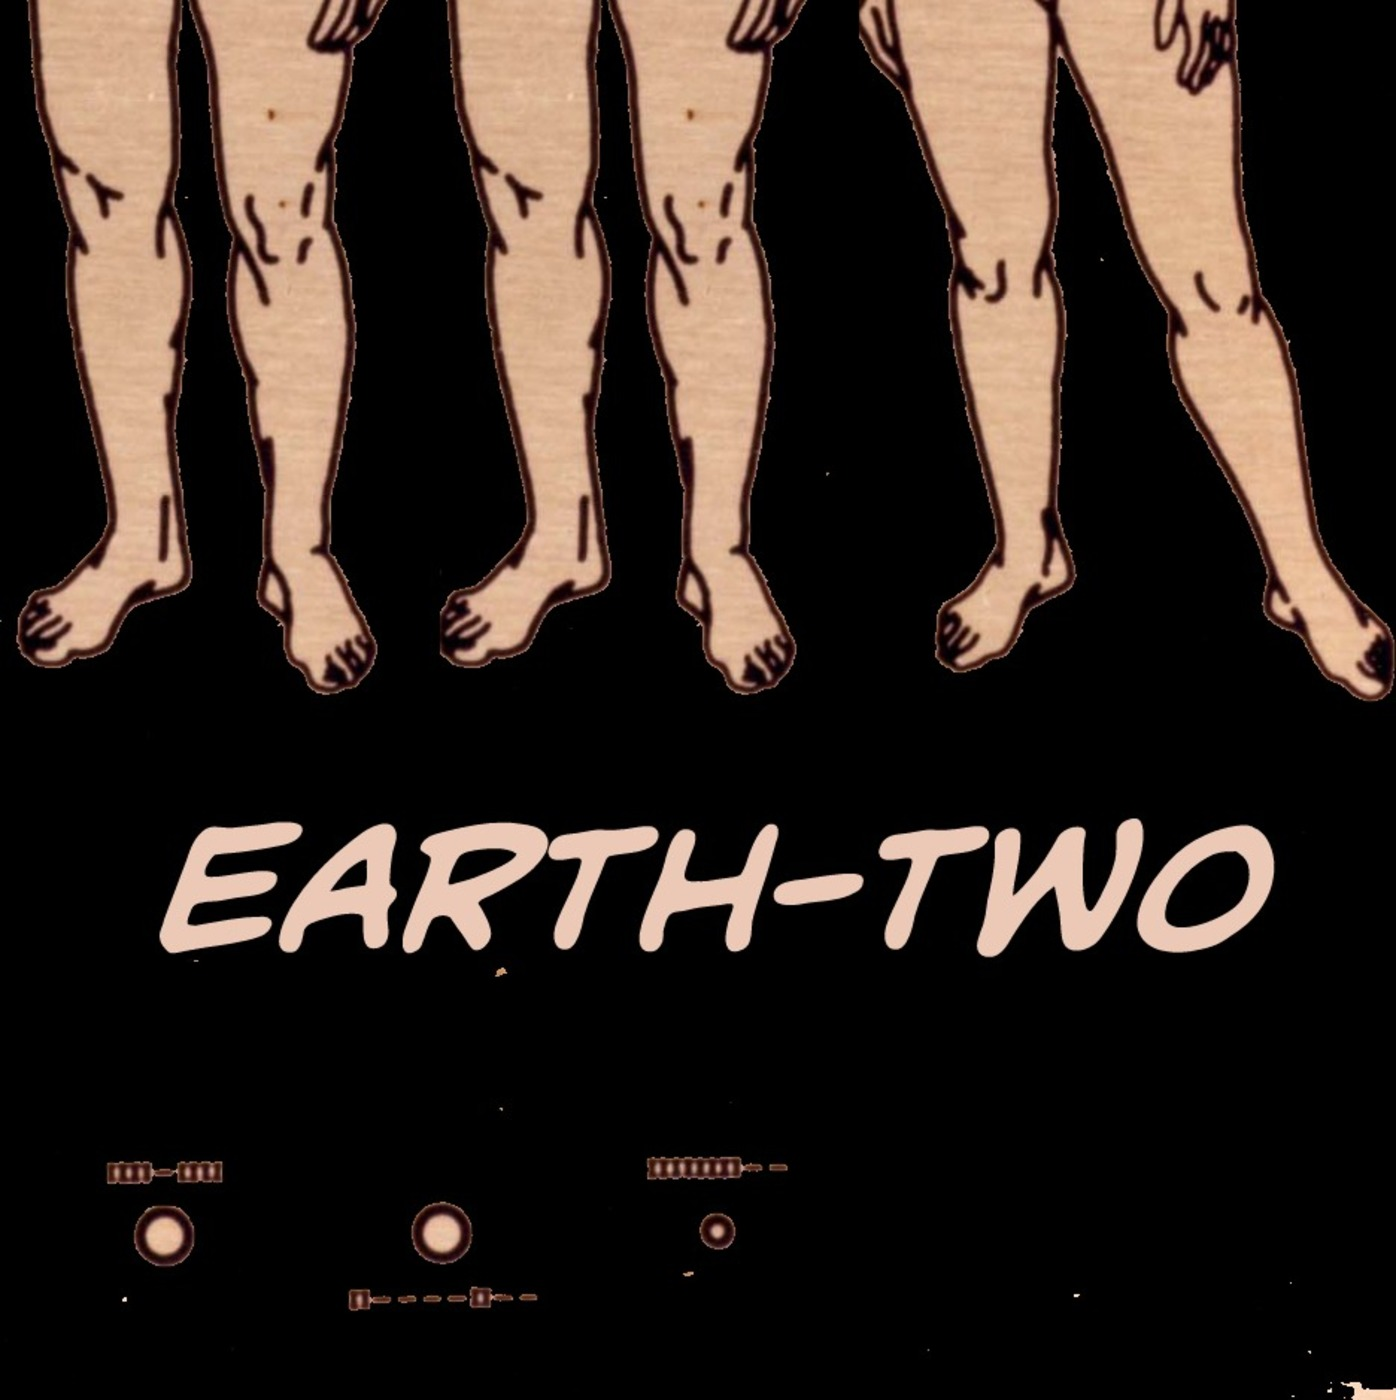 Earth Two